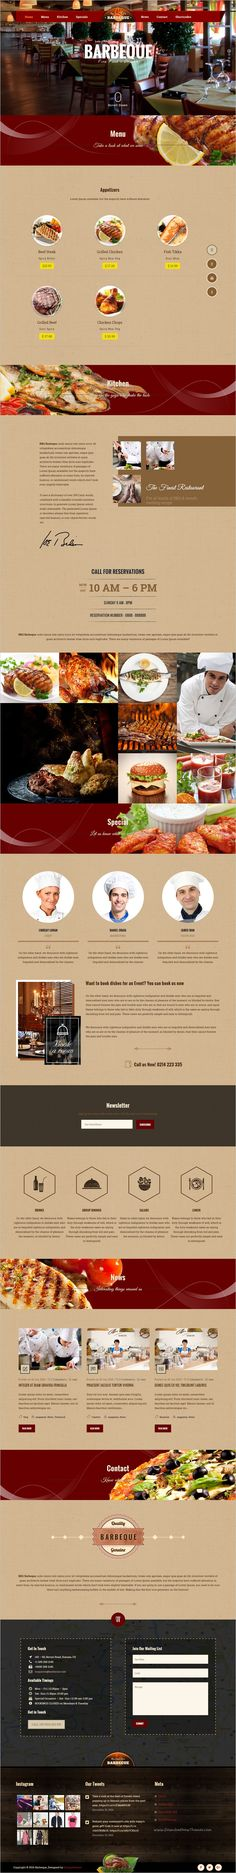 Food is beautifully design responsive 3in1 #WordPress theme for #restaurants, #bbq ice cream parlors, bars & pubs, wineries, cafe, bakery and other hospitality businesses website download now➩ https://themeforest.net/item/foods-restaurant-bar-ice-cream-wp-theme/18946351?ref=Datasata